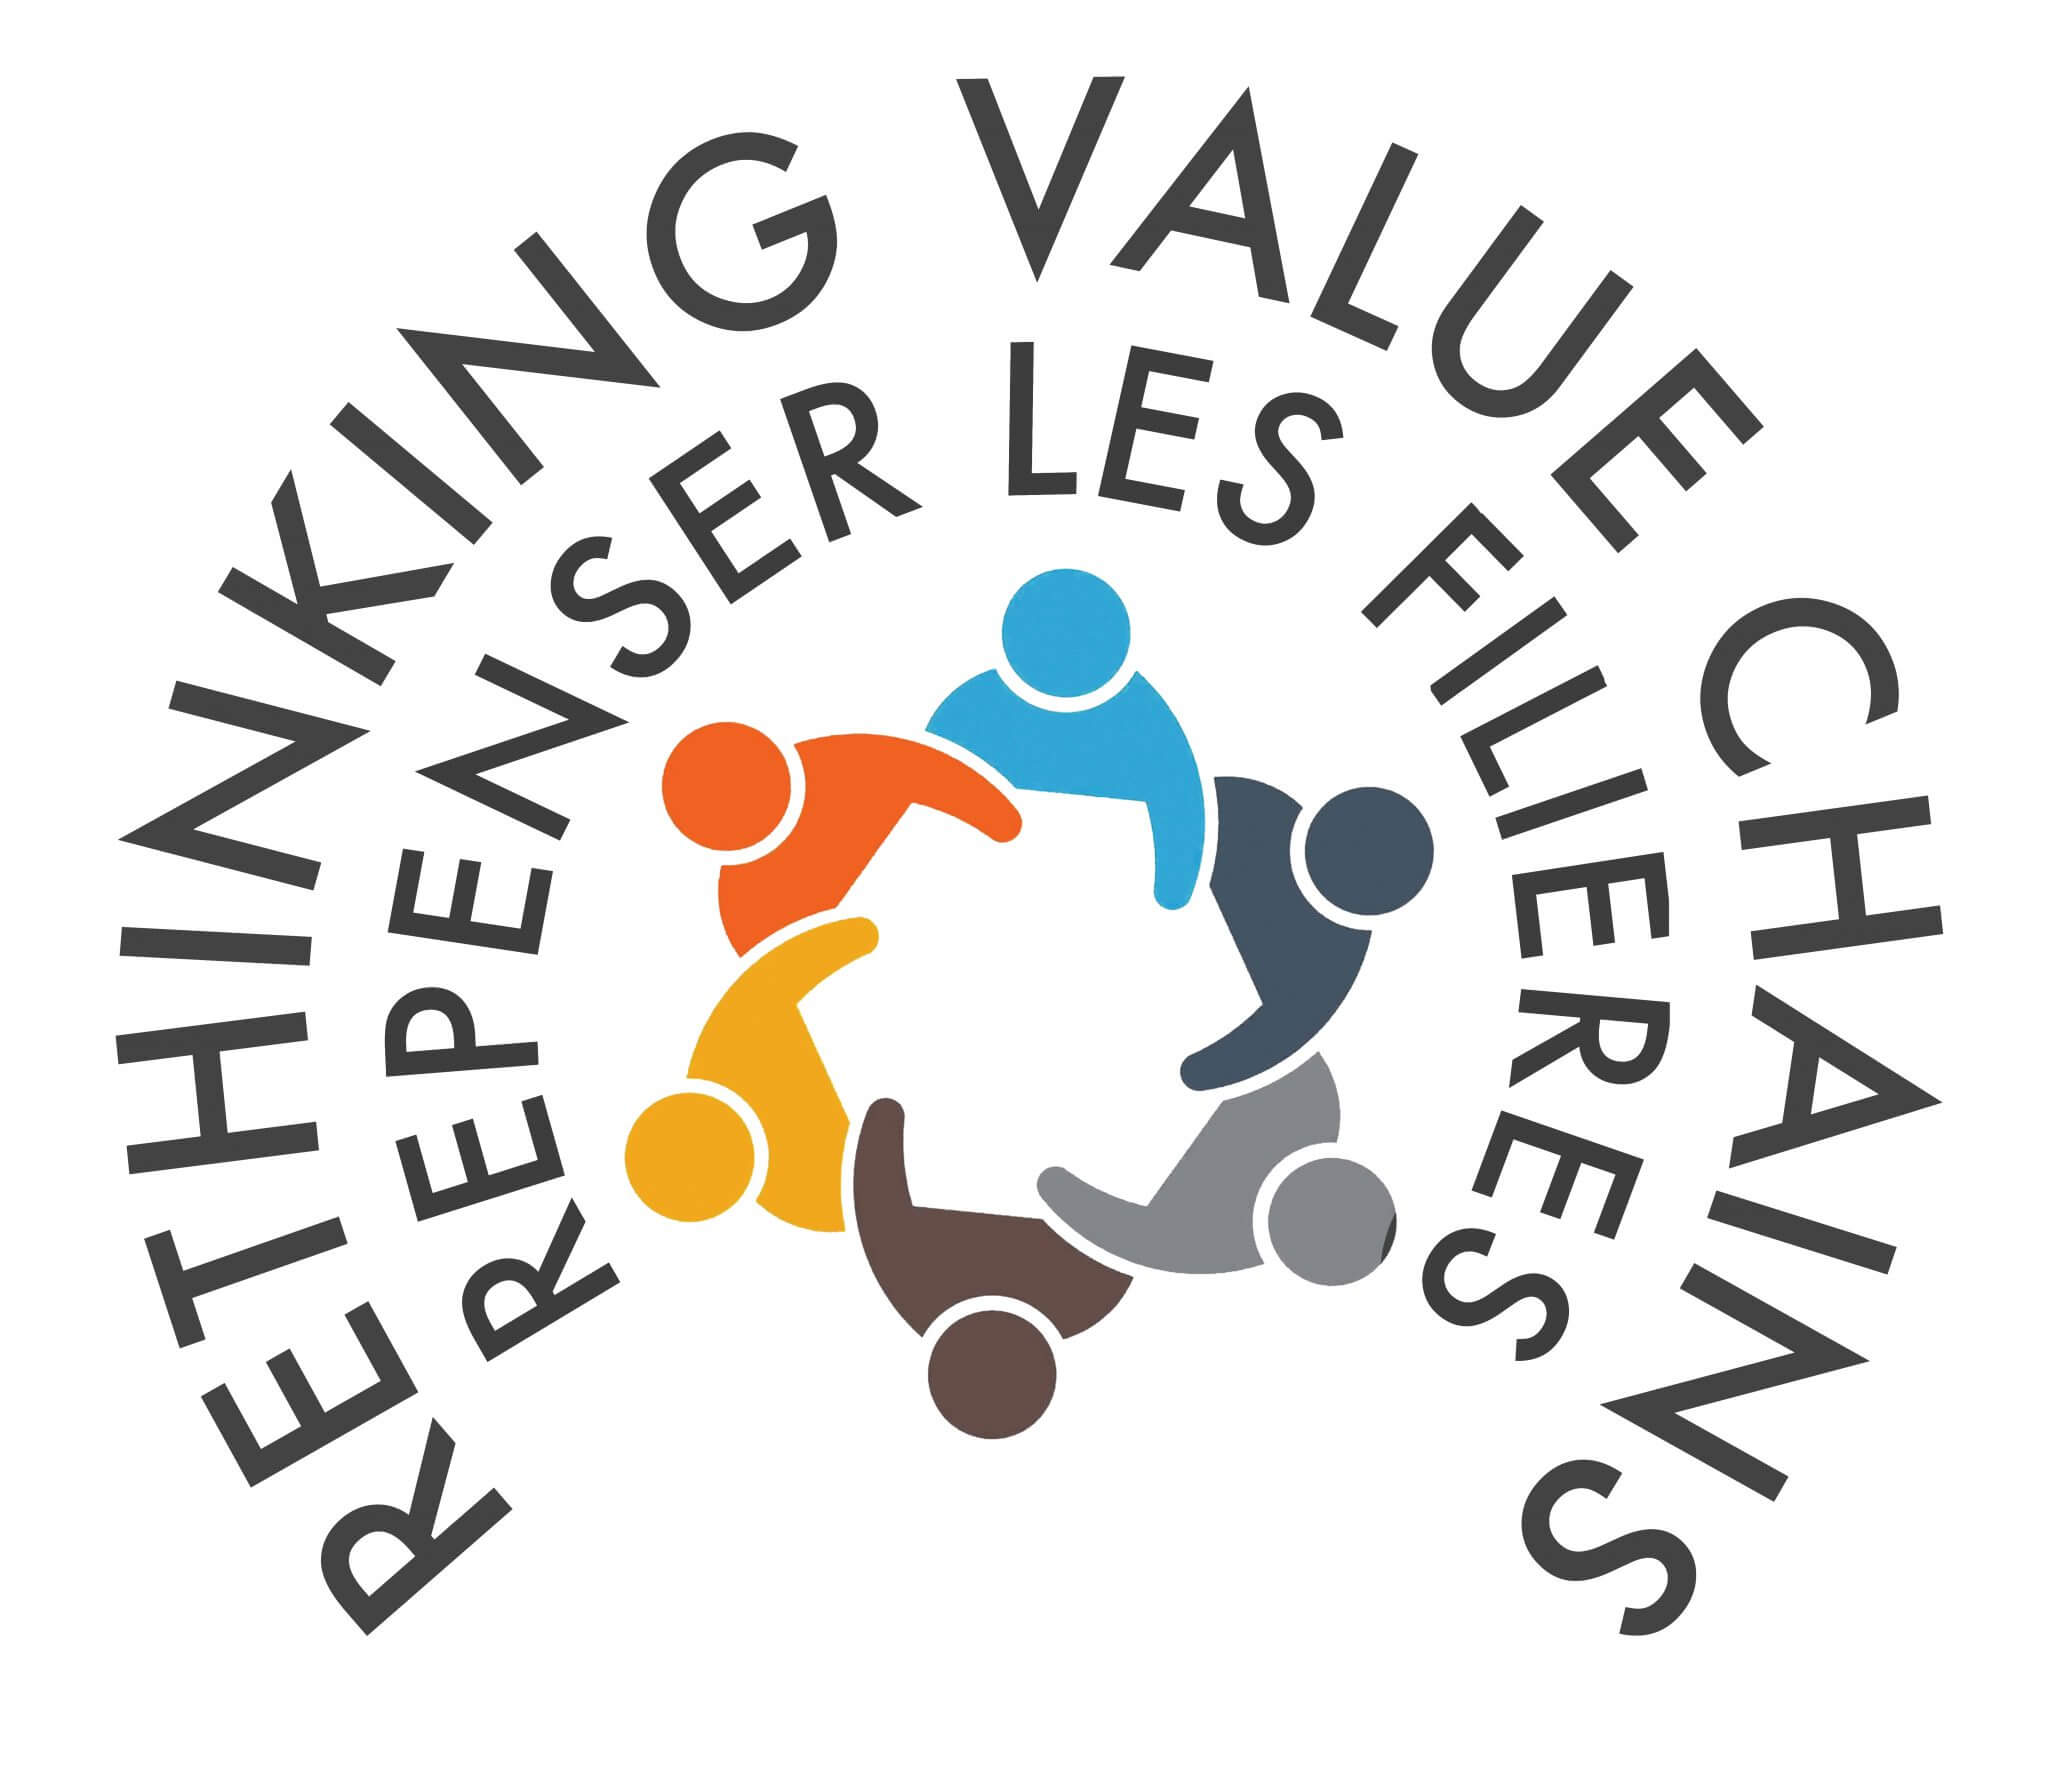 Rethinking Value Chains